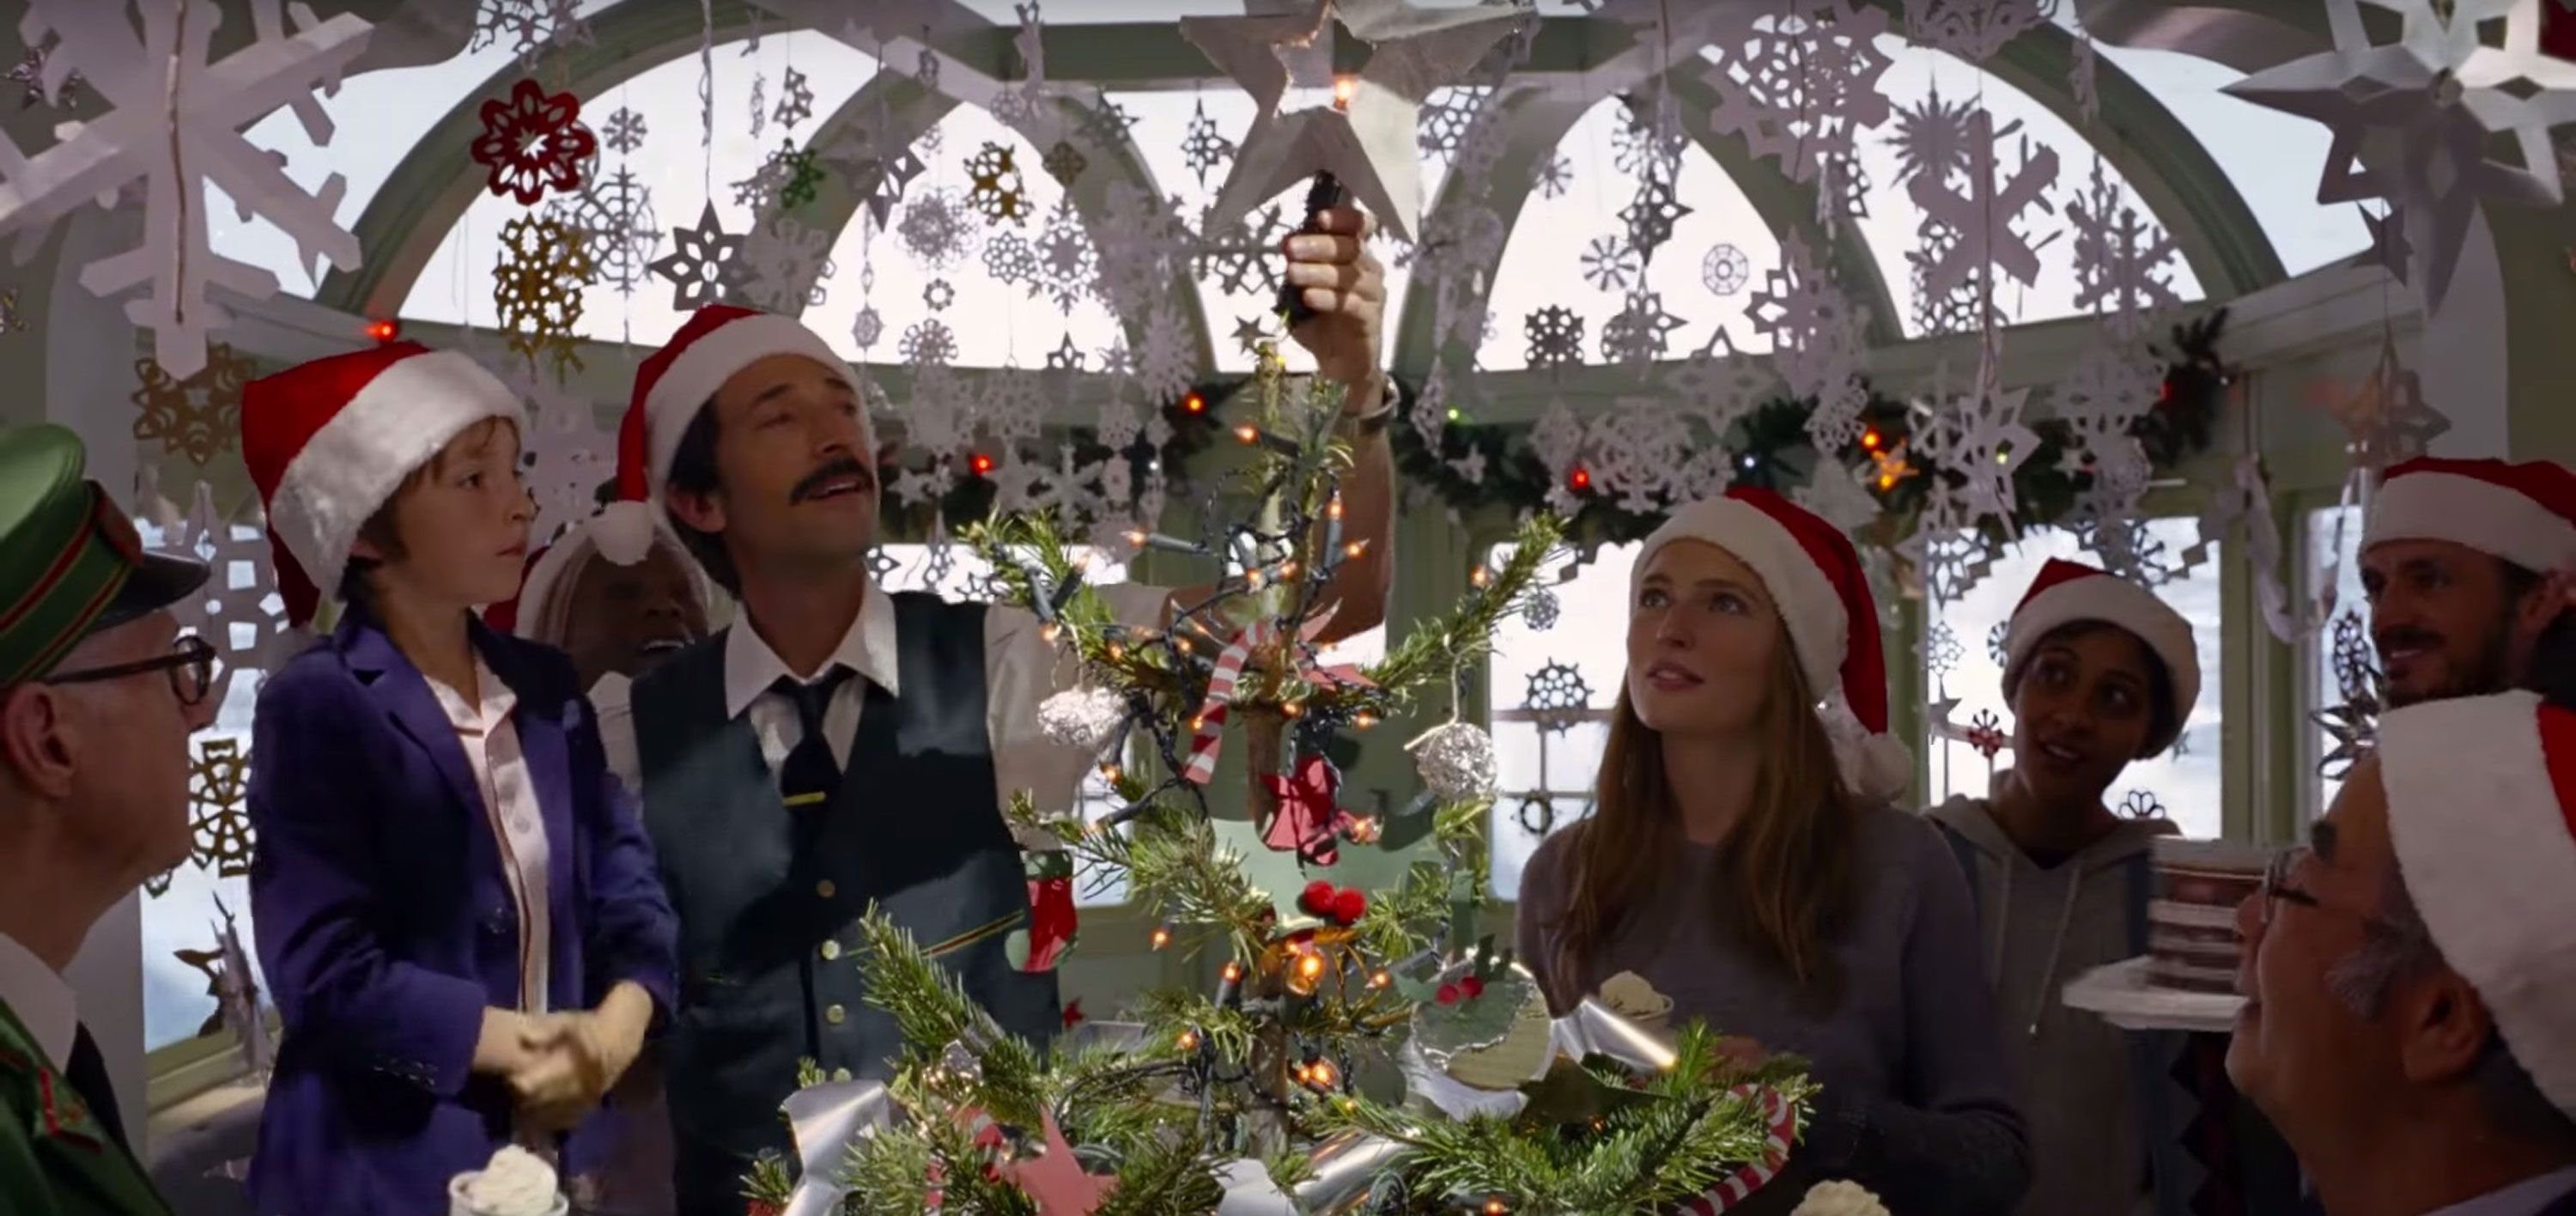 wes anderson directed the new hm christmas advert - Hm Christmas